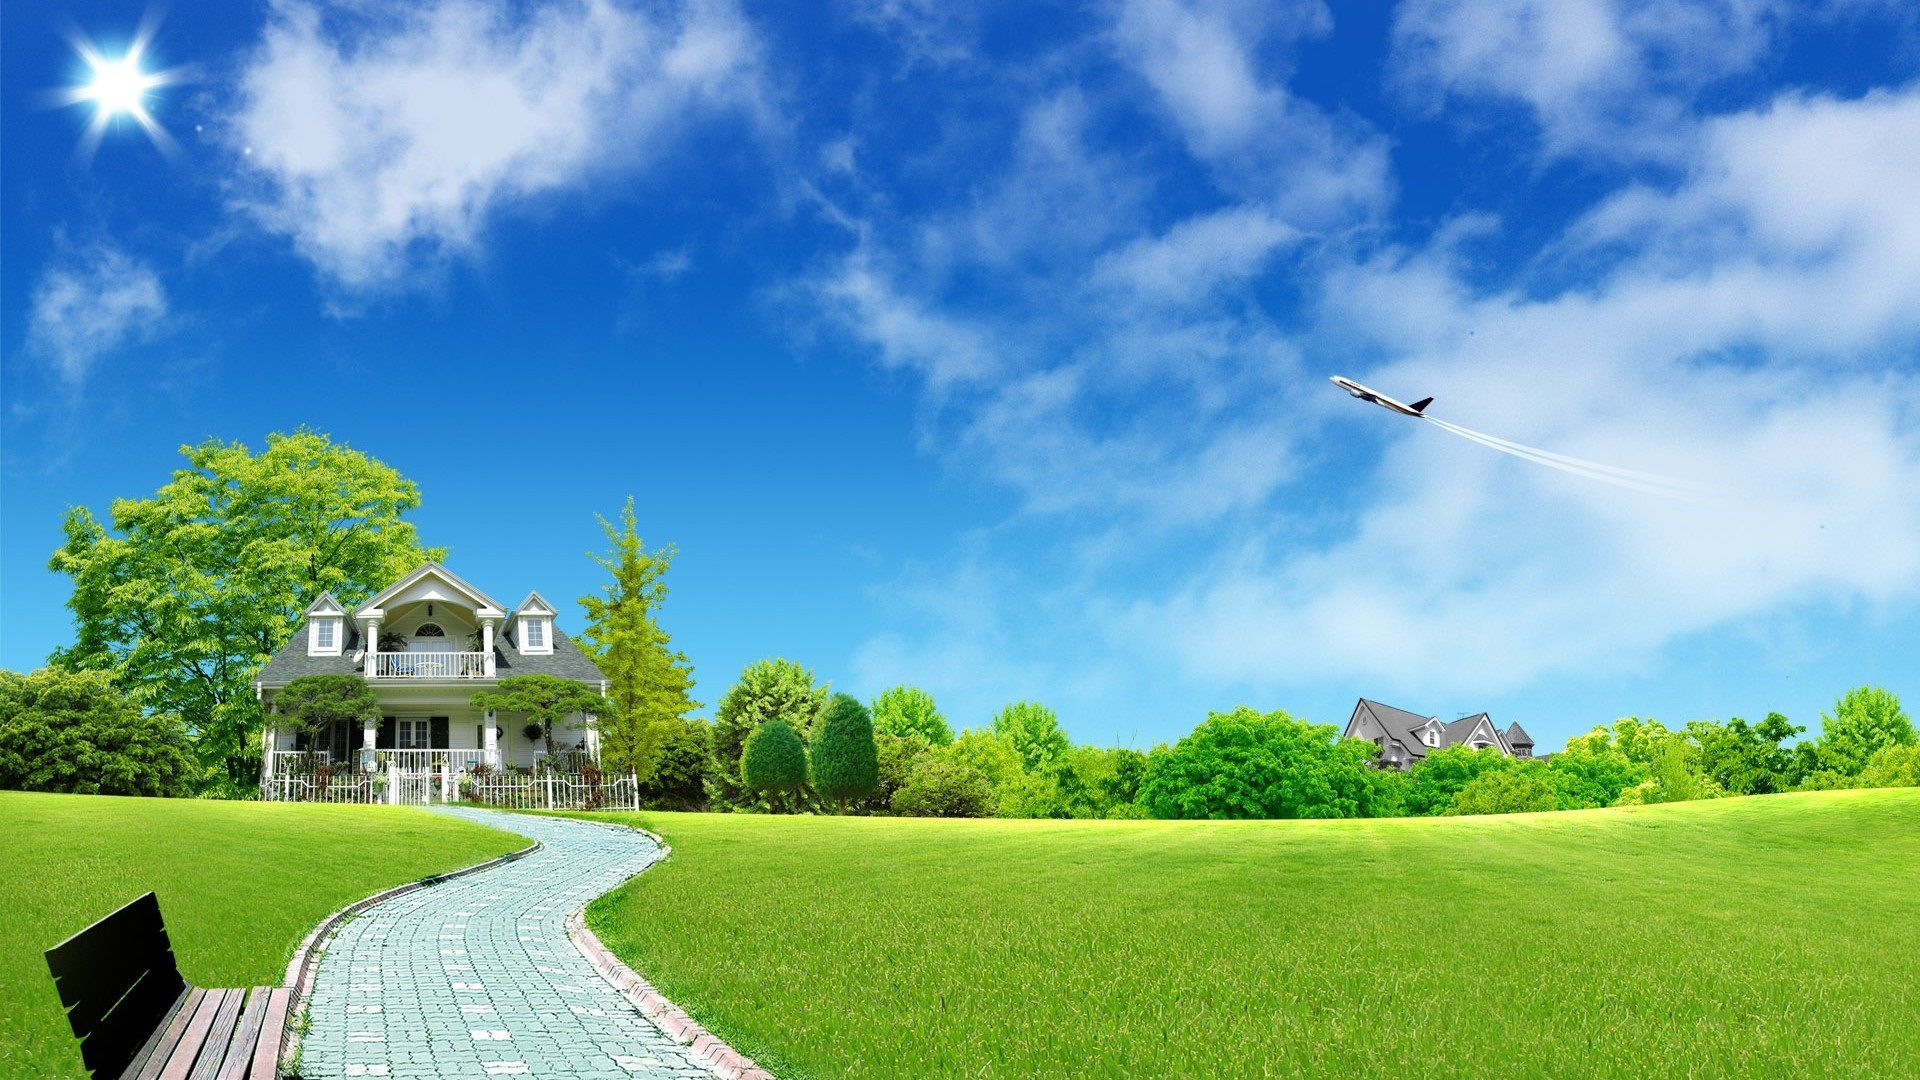 Building On Nature Background